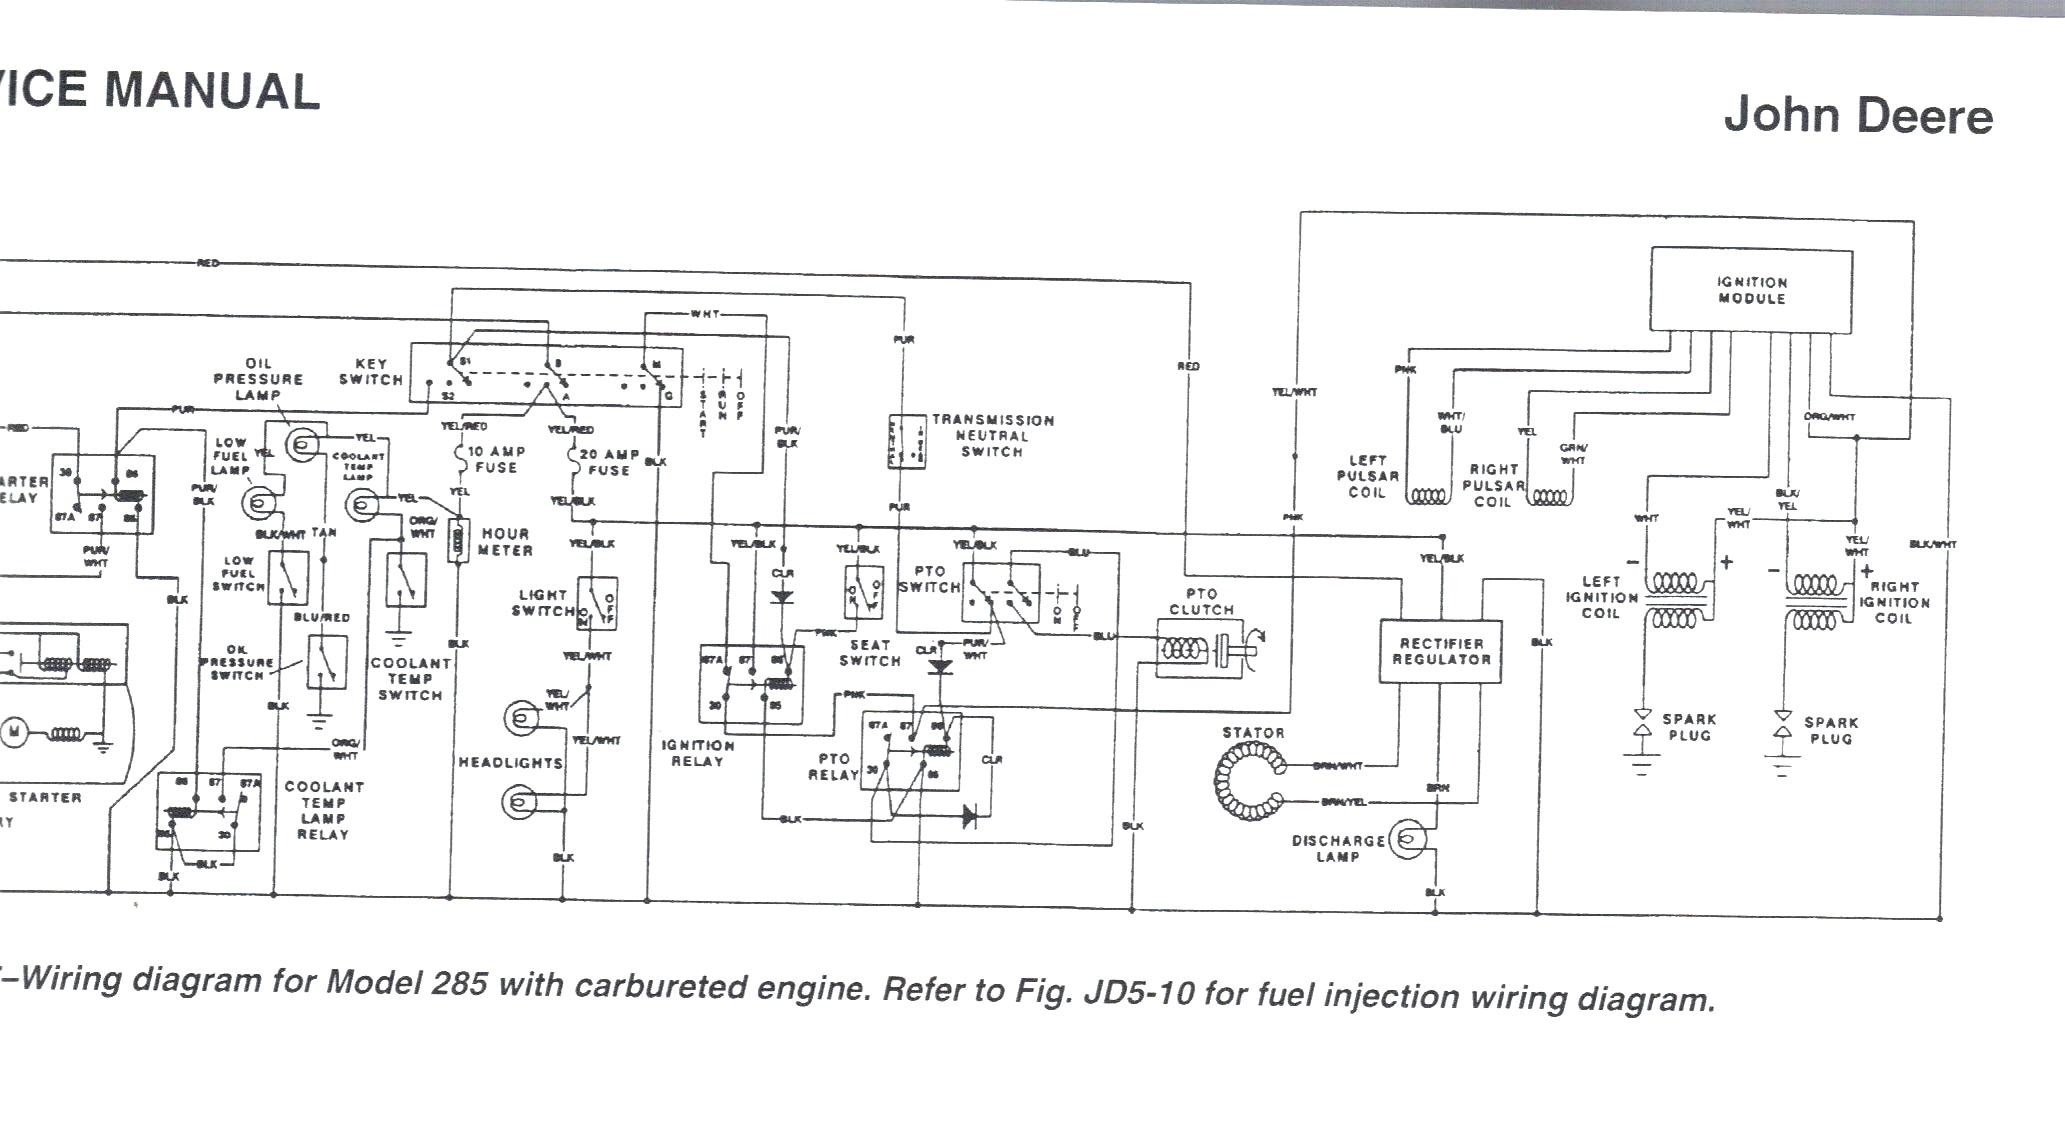 Full Size of John Deere Lt155 Electrical Wiring Diagram Schematics Archived Wiring Diagram Category With